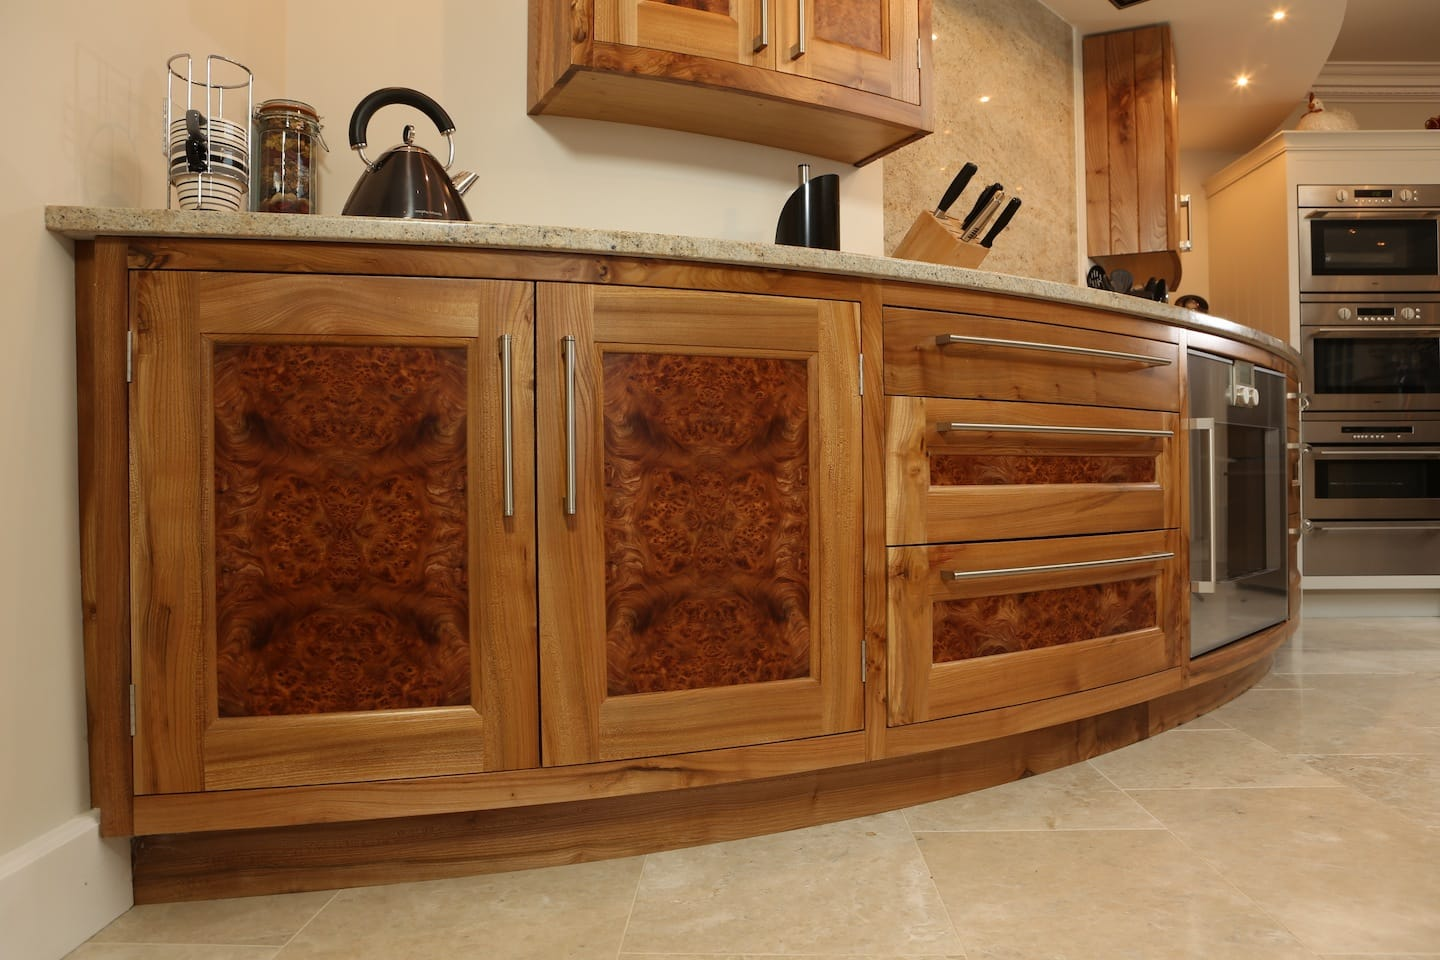 detail view of curved solid oak kitchen cabinets with integrated oven and gas hob, marble worktops